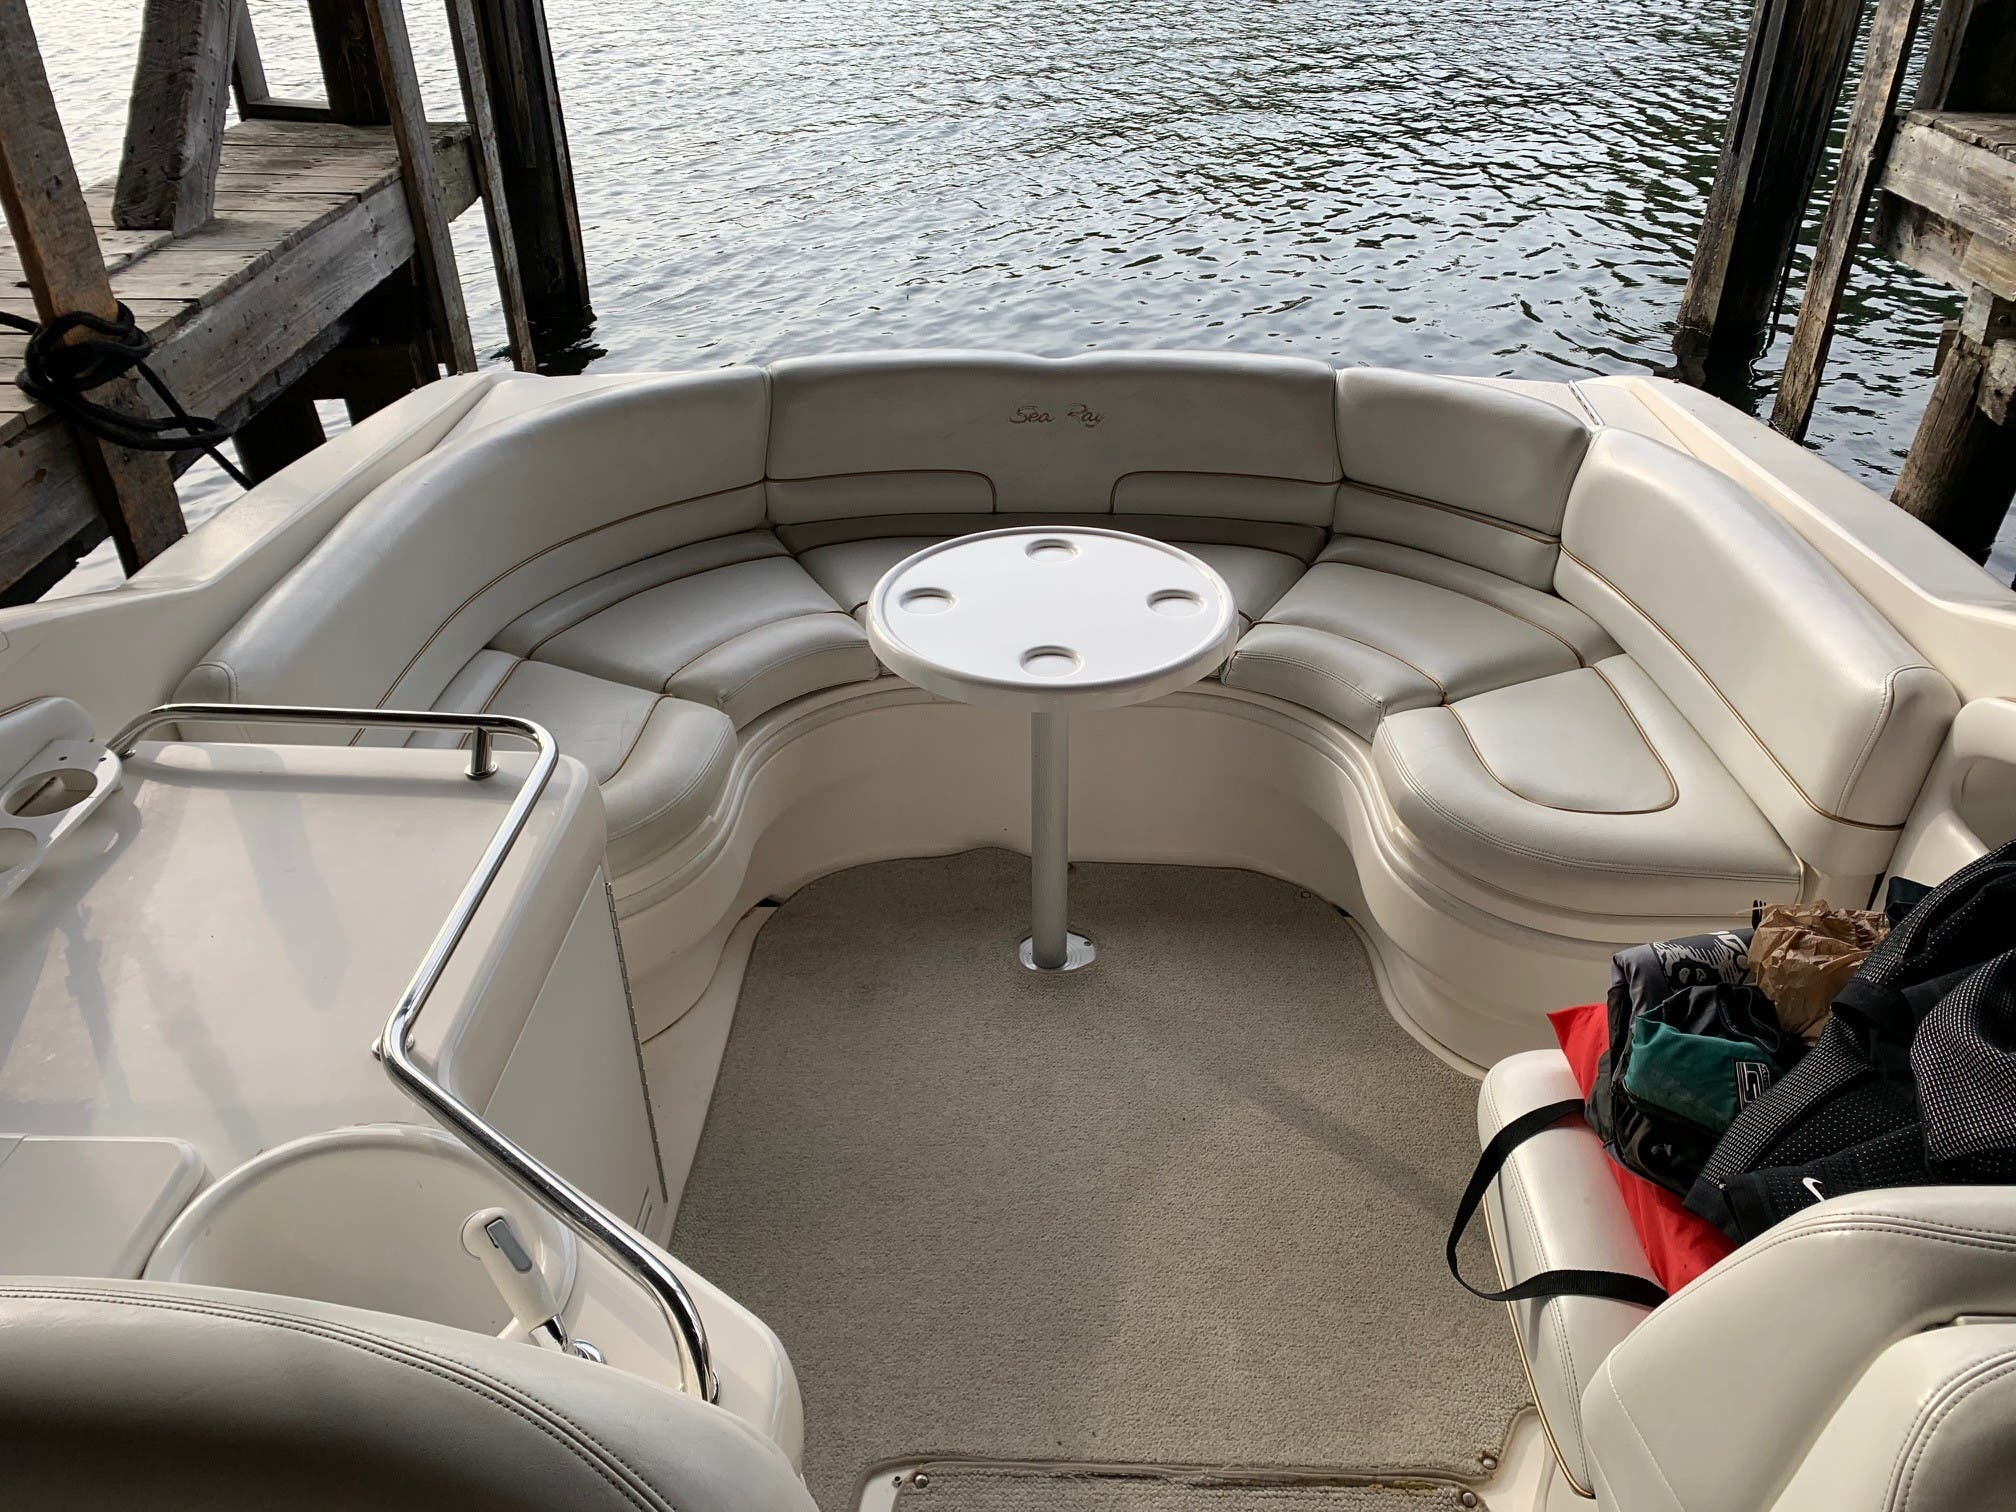 1998 Sea Ray boat for sale, model of the boat is 280 Sunsport & Image # 5 of 11